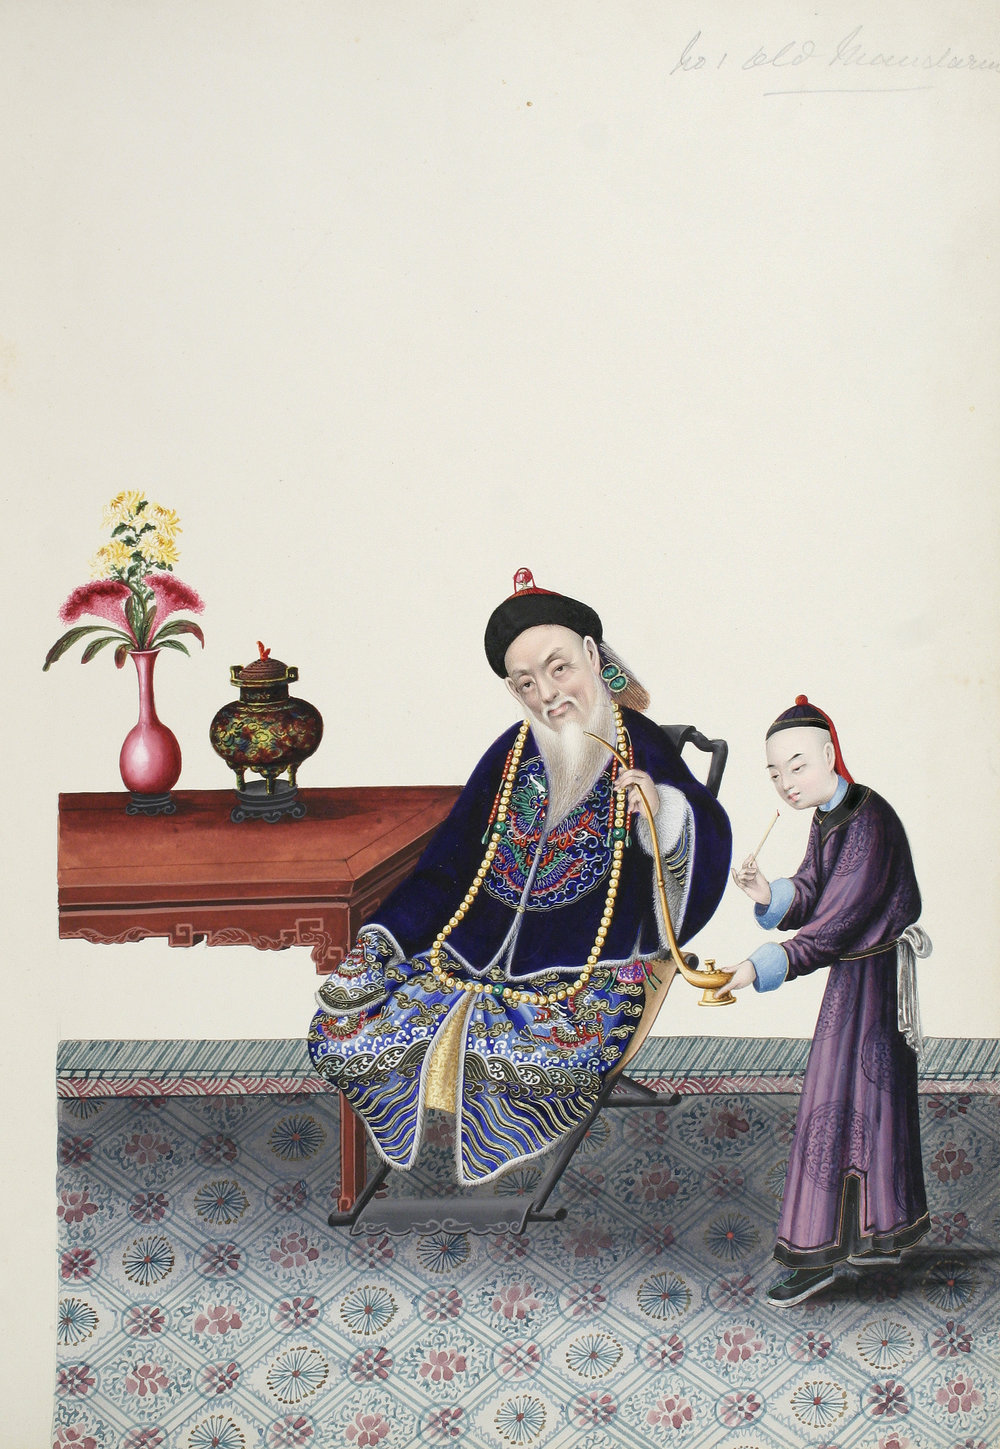 TINGQUA , (Guan Lianchang).  Album of 50 Gouache Paintings on Thick Paper of Treaty Ports, the Opium War, Costumes, Ceremonies, Genre-Paintings, Chinese gardens, and Scenes in and around Canton .